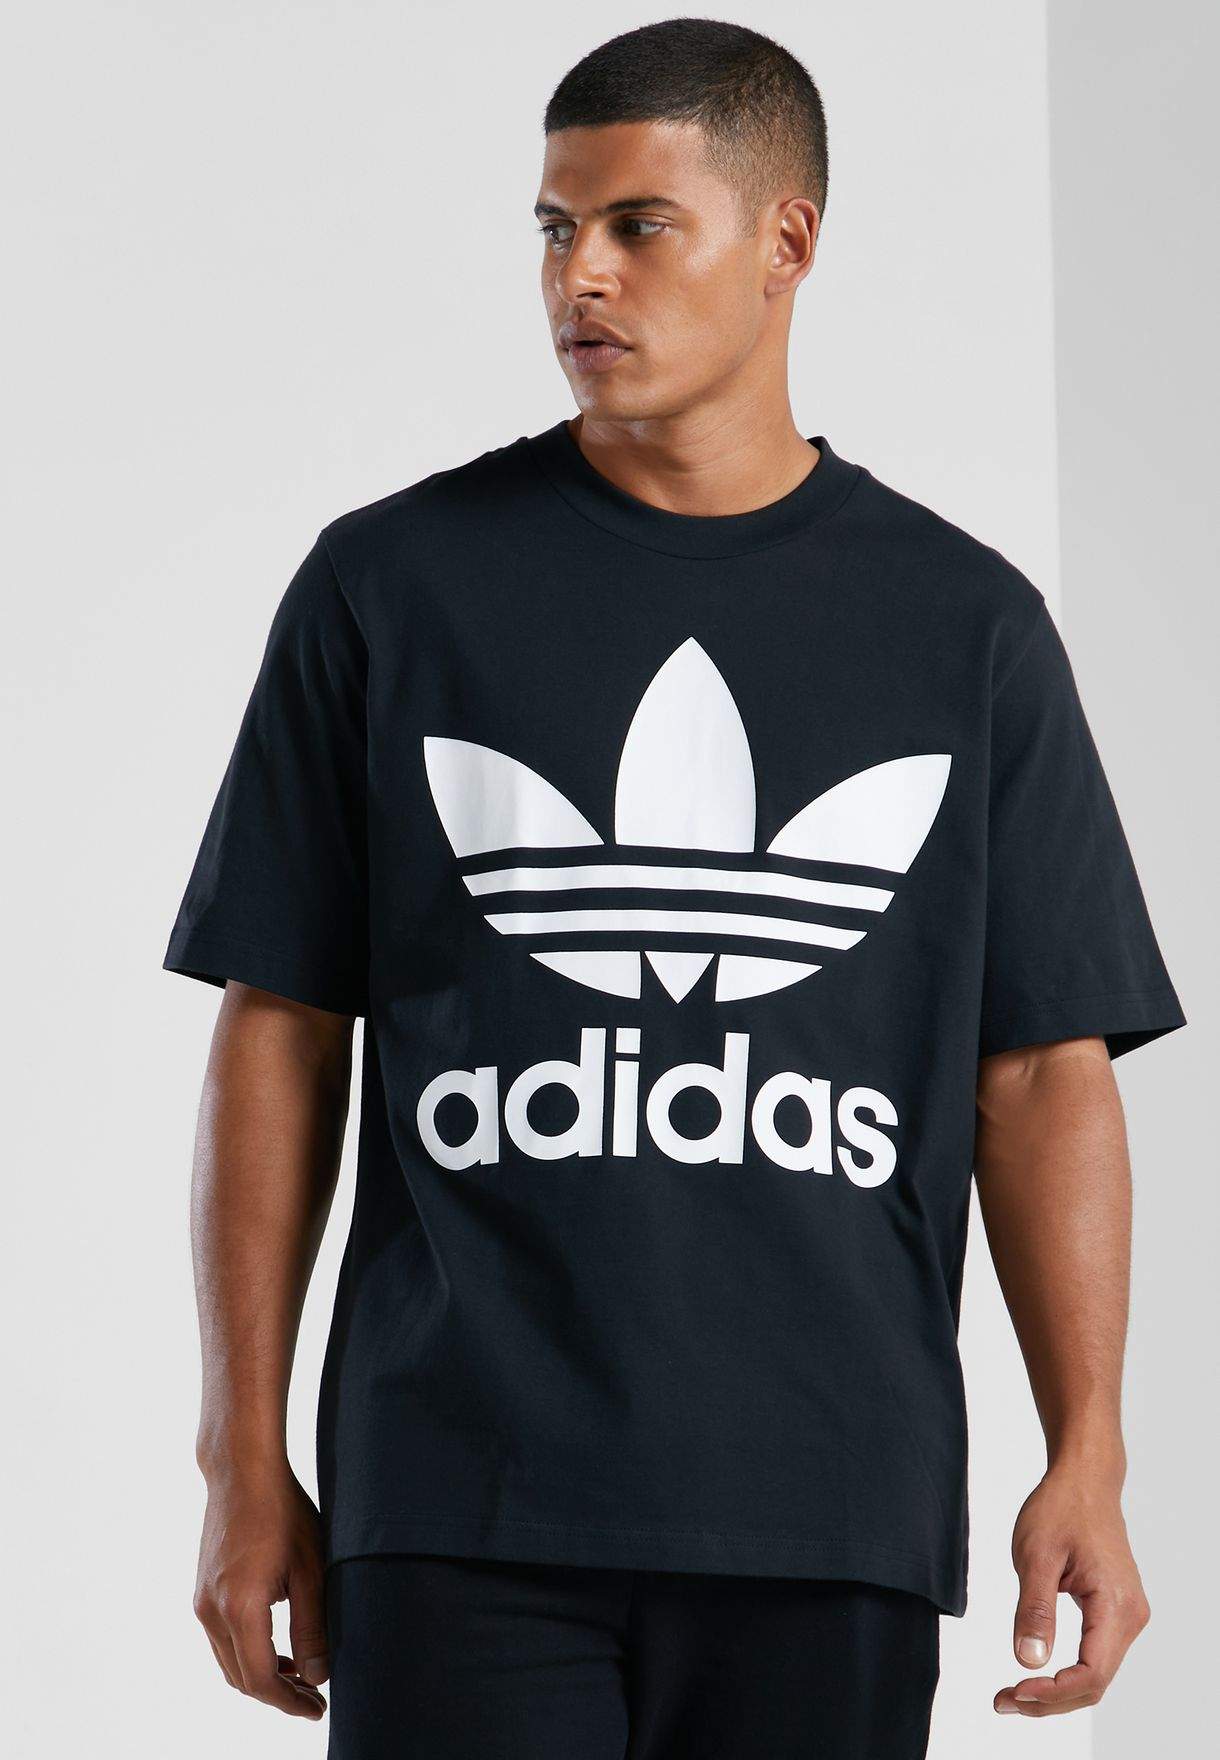 767ca7d955d8f3 Shop adidas Originals black adicolor Trefoil Oversized T-Shirt ...